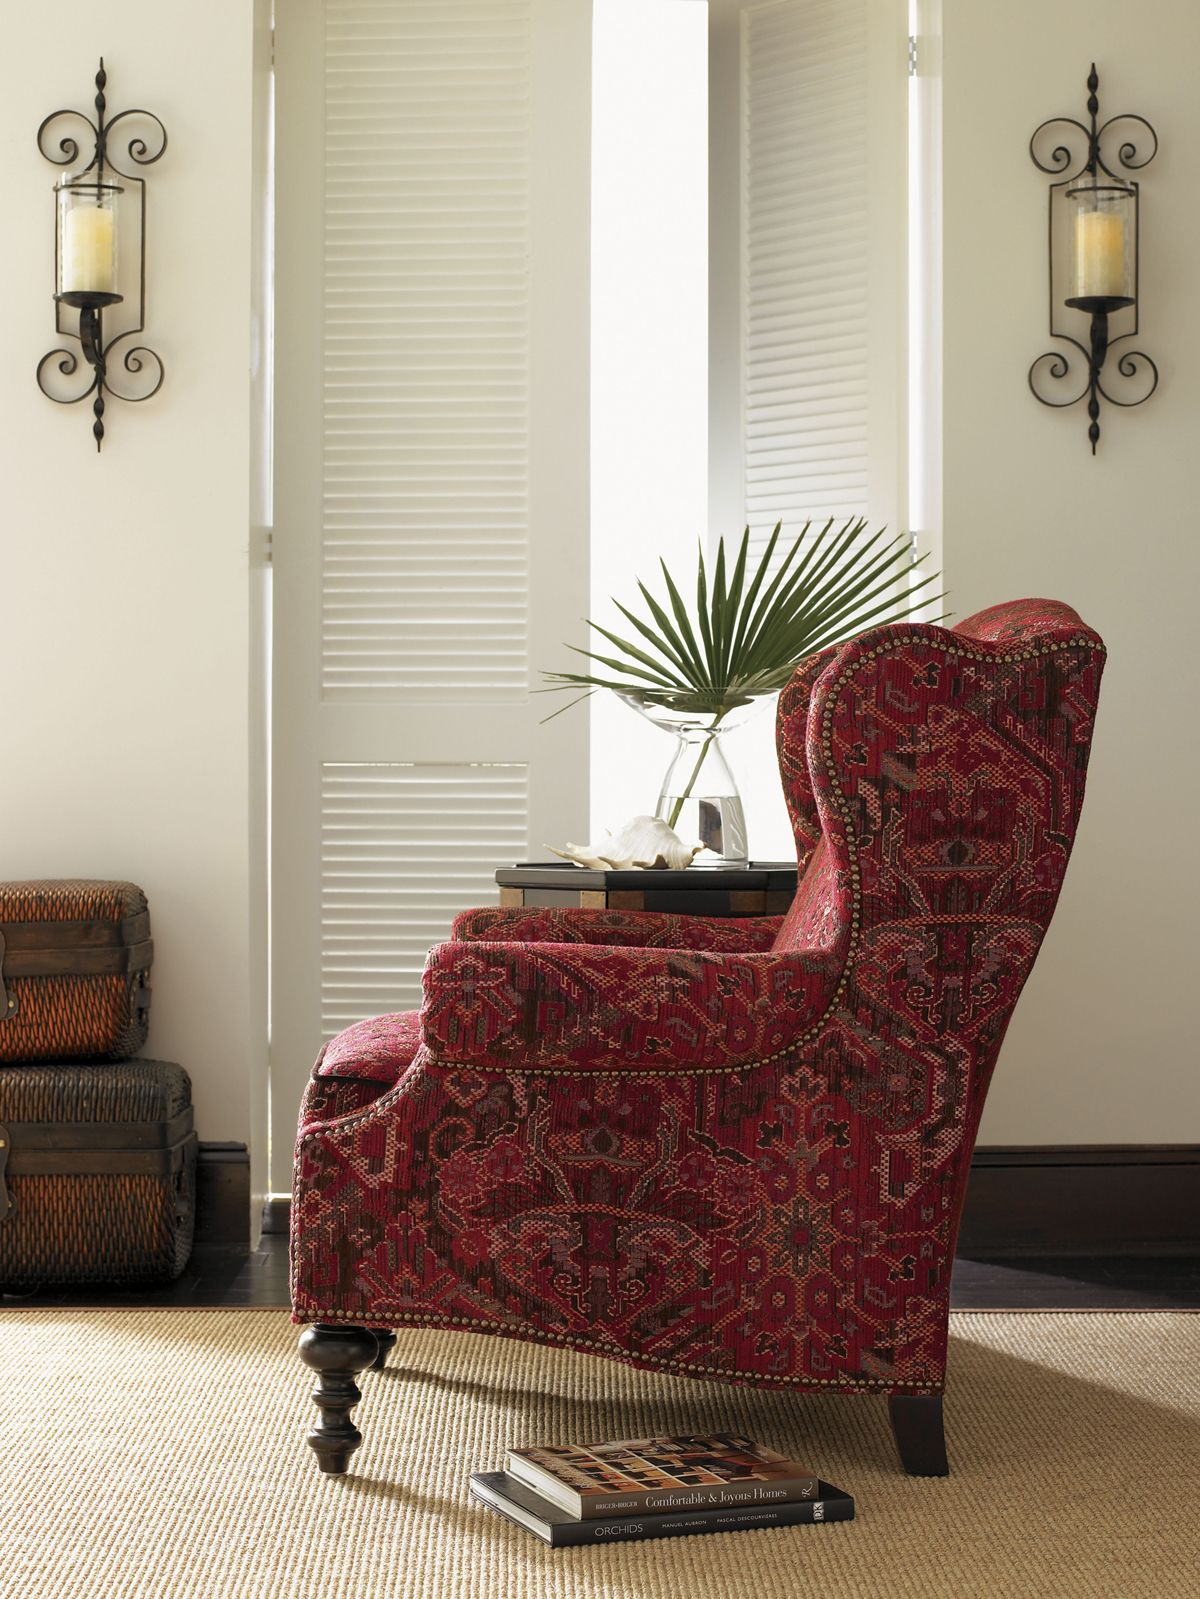 Royal Kahala Batik Wing Chair From Lexington Home Brands #LHBDesign  #RedAccentChair